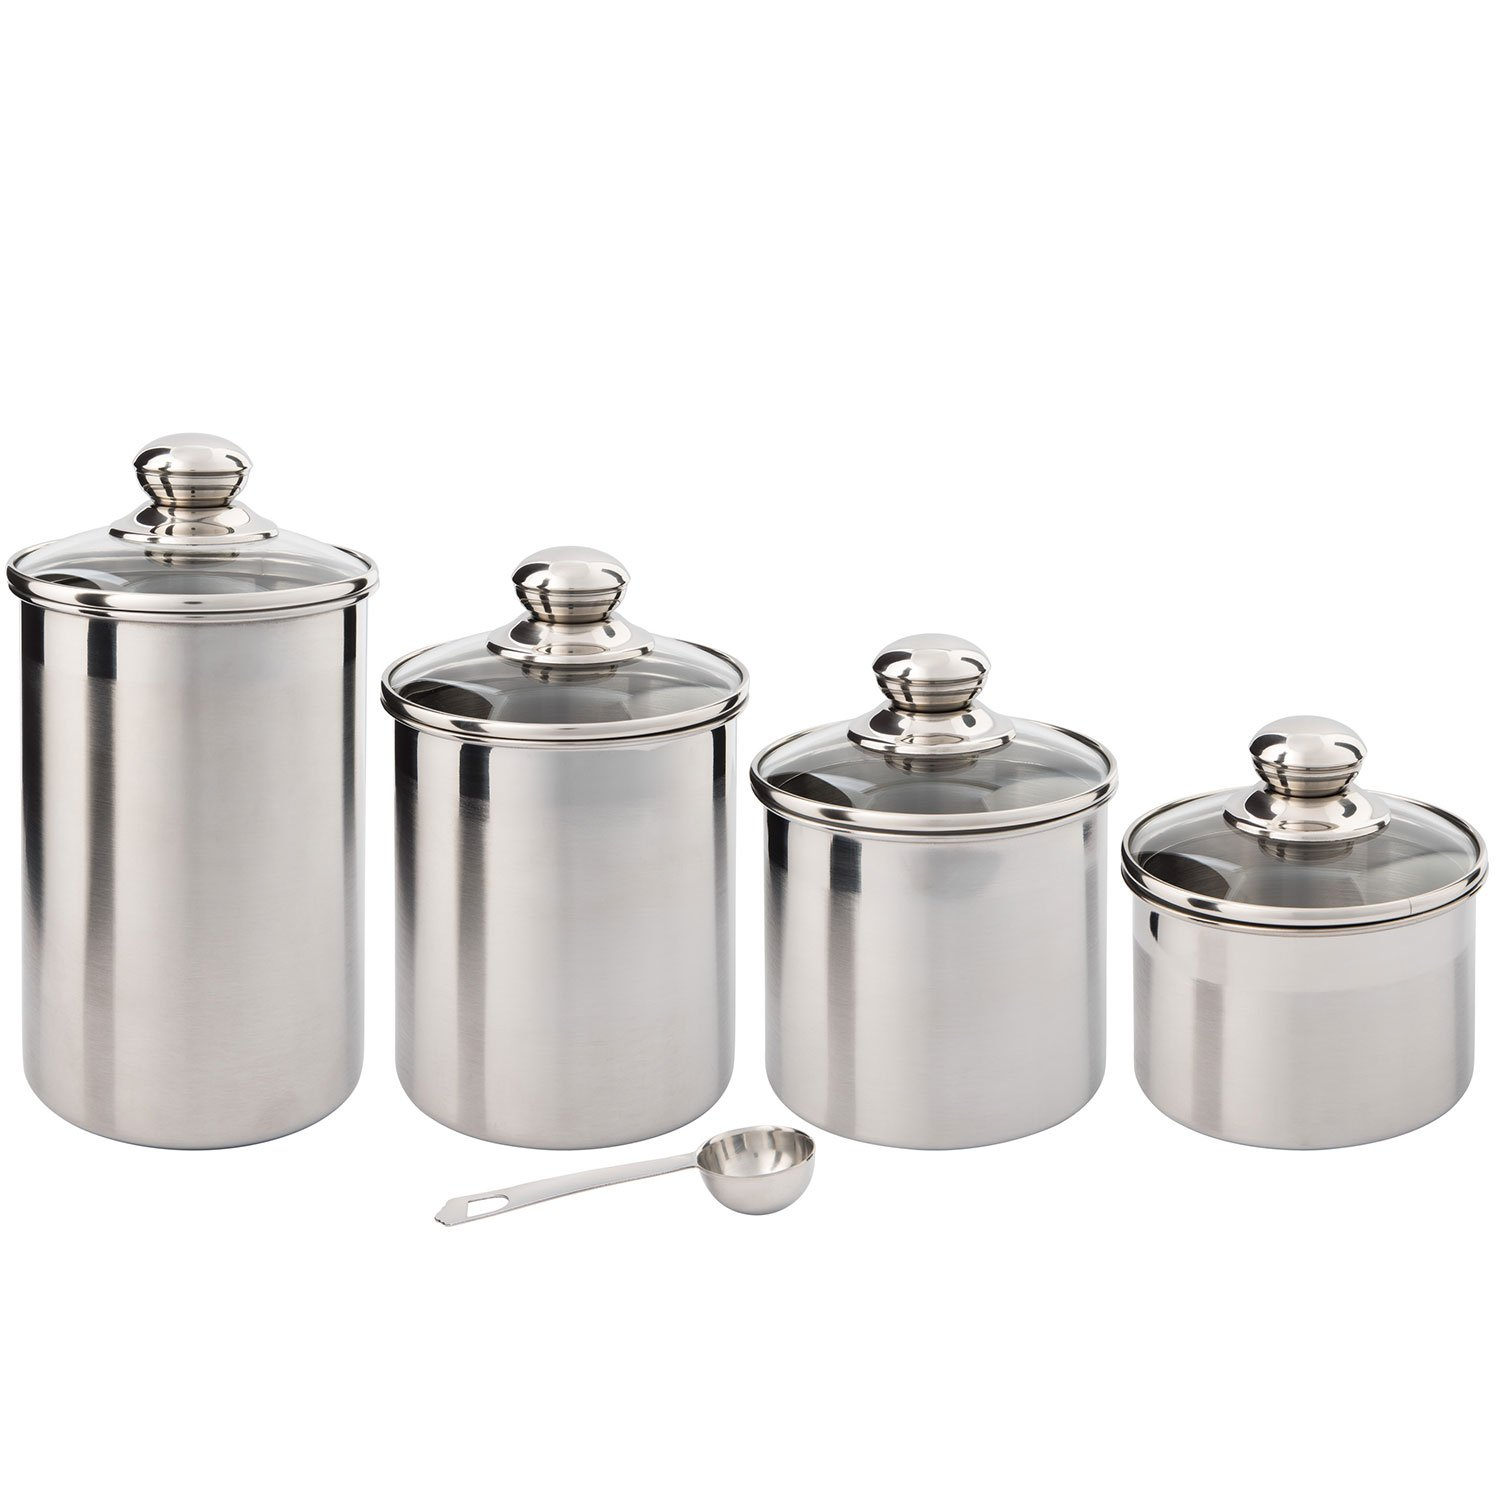 Silver yx Canister Set Stainless Steel 4 piece Walmart